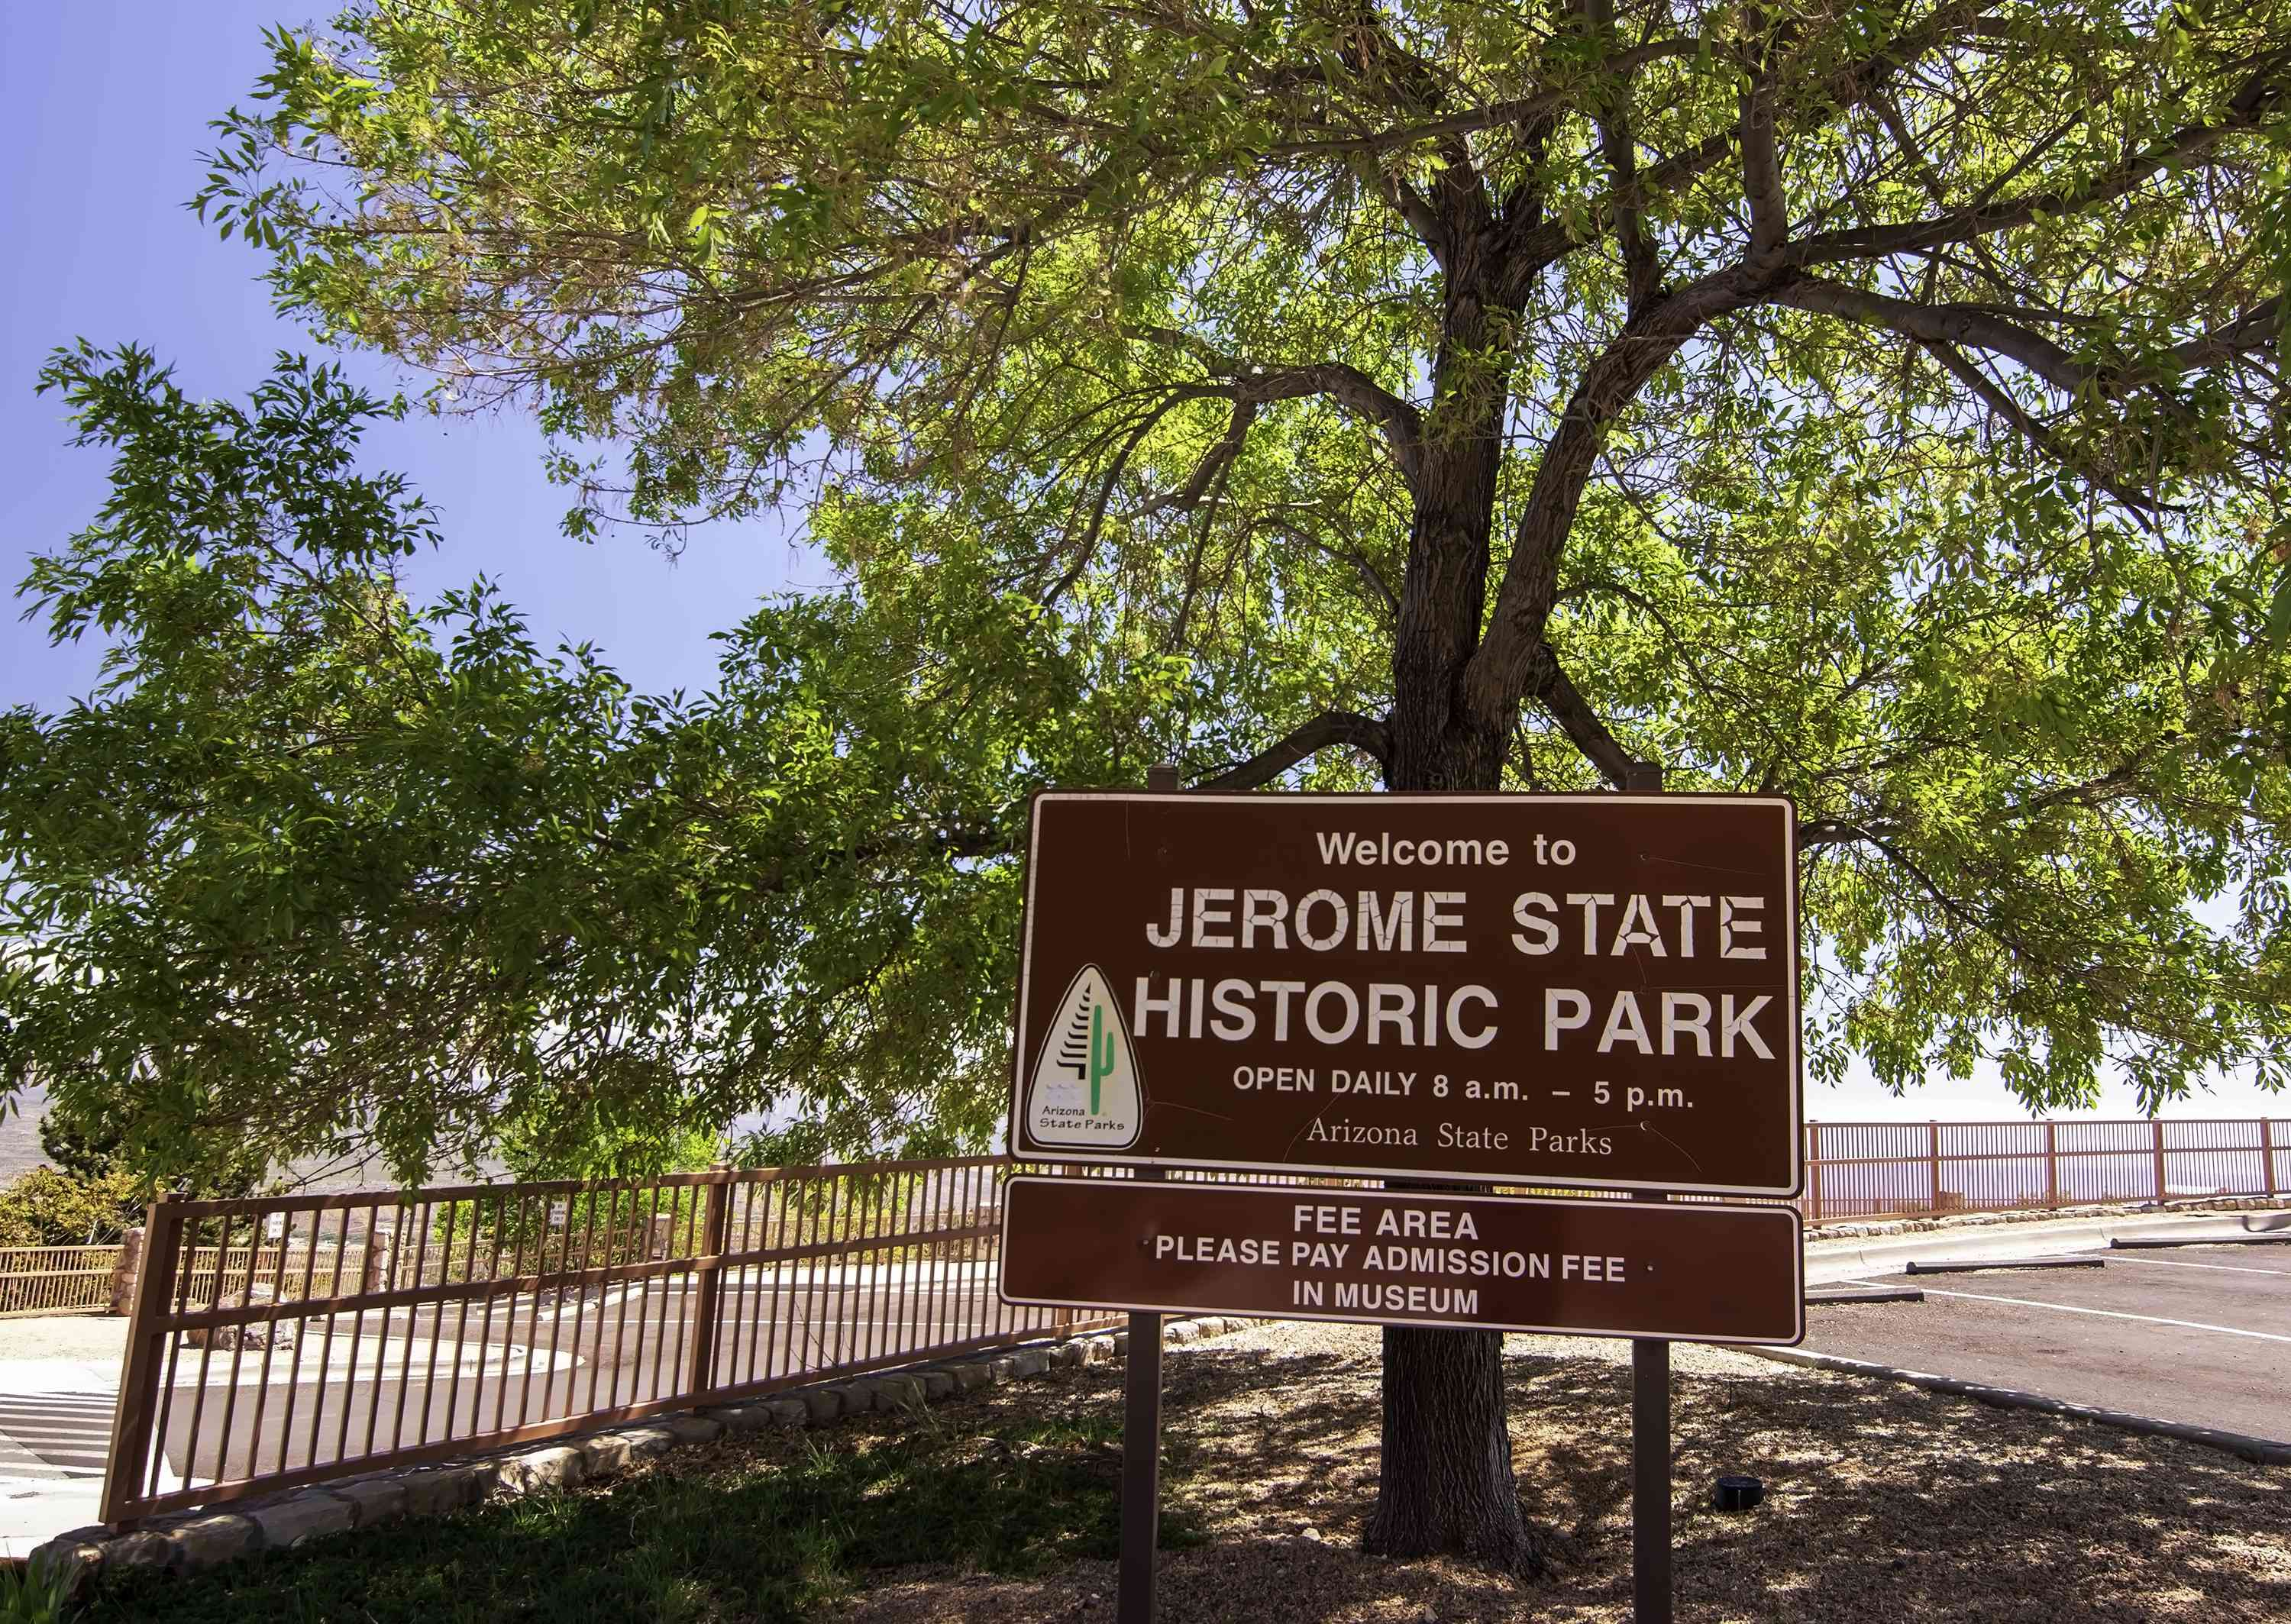 The sign to the entrance of the Jerome Historic State Park on a sunny spring day